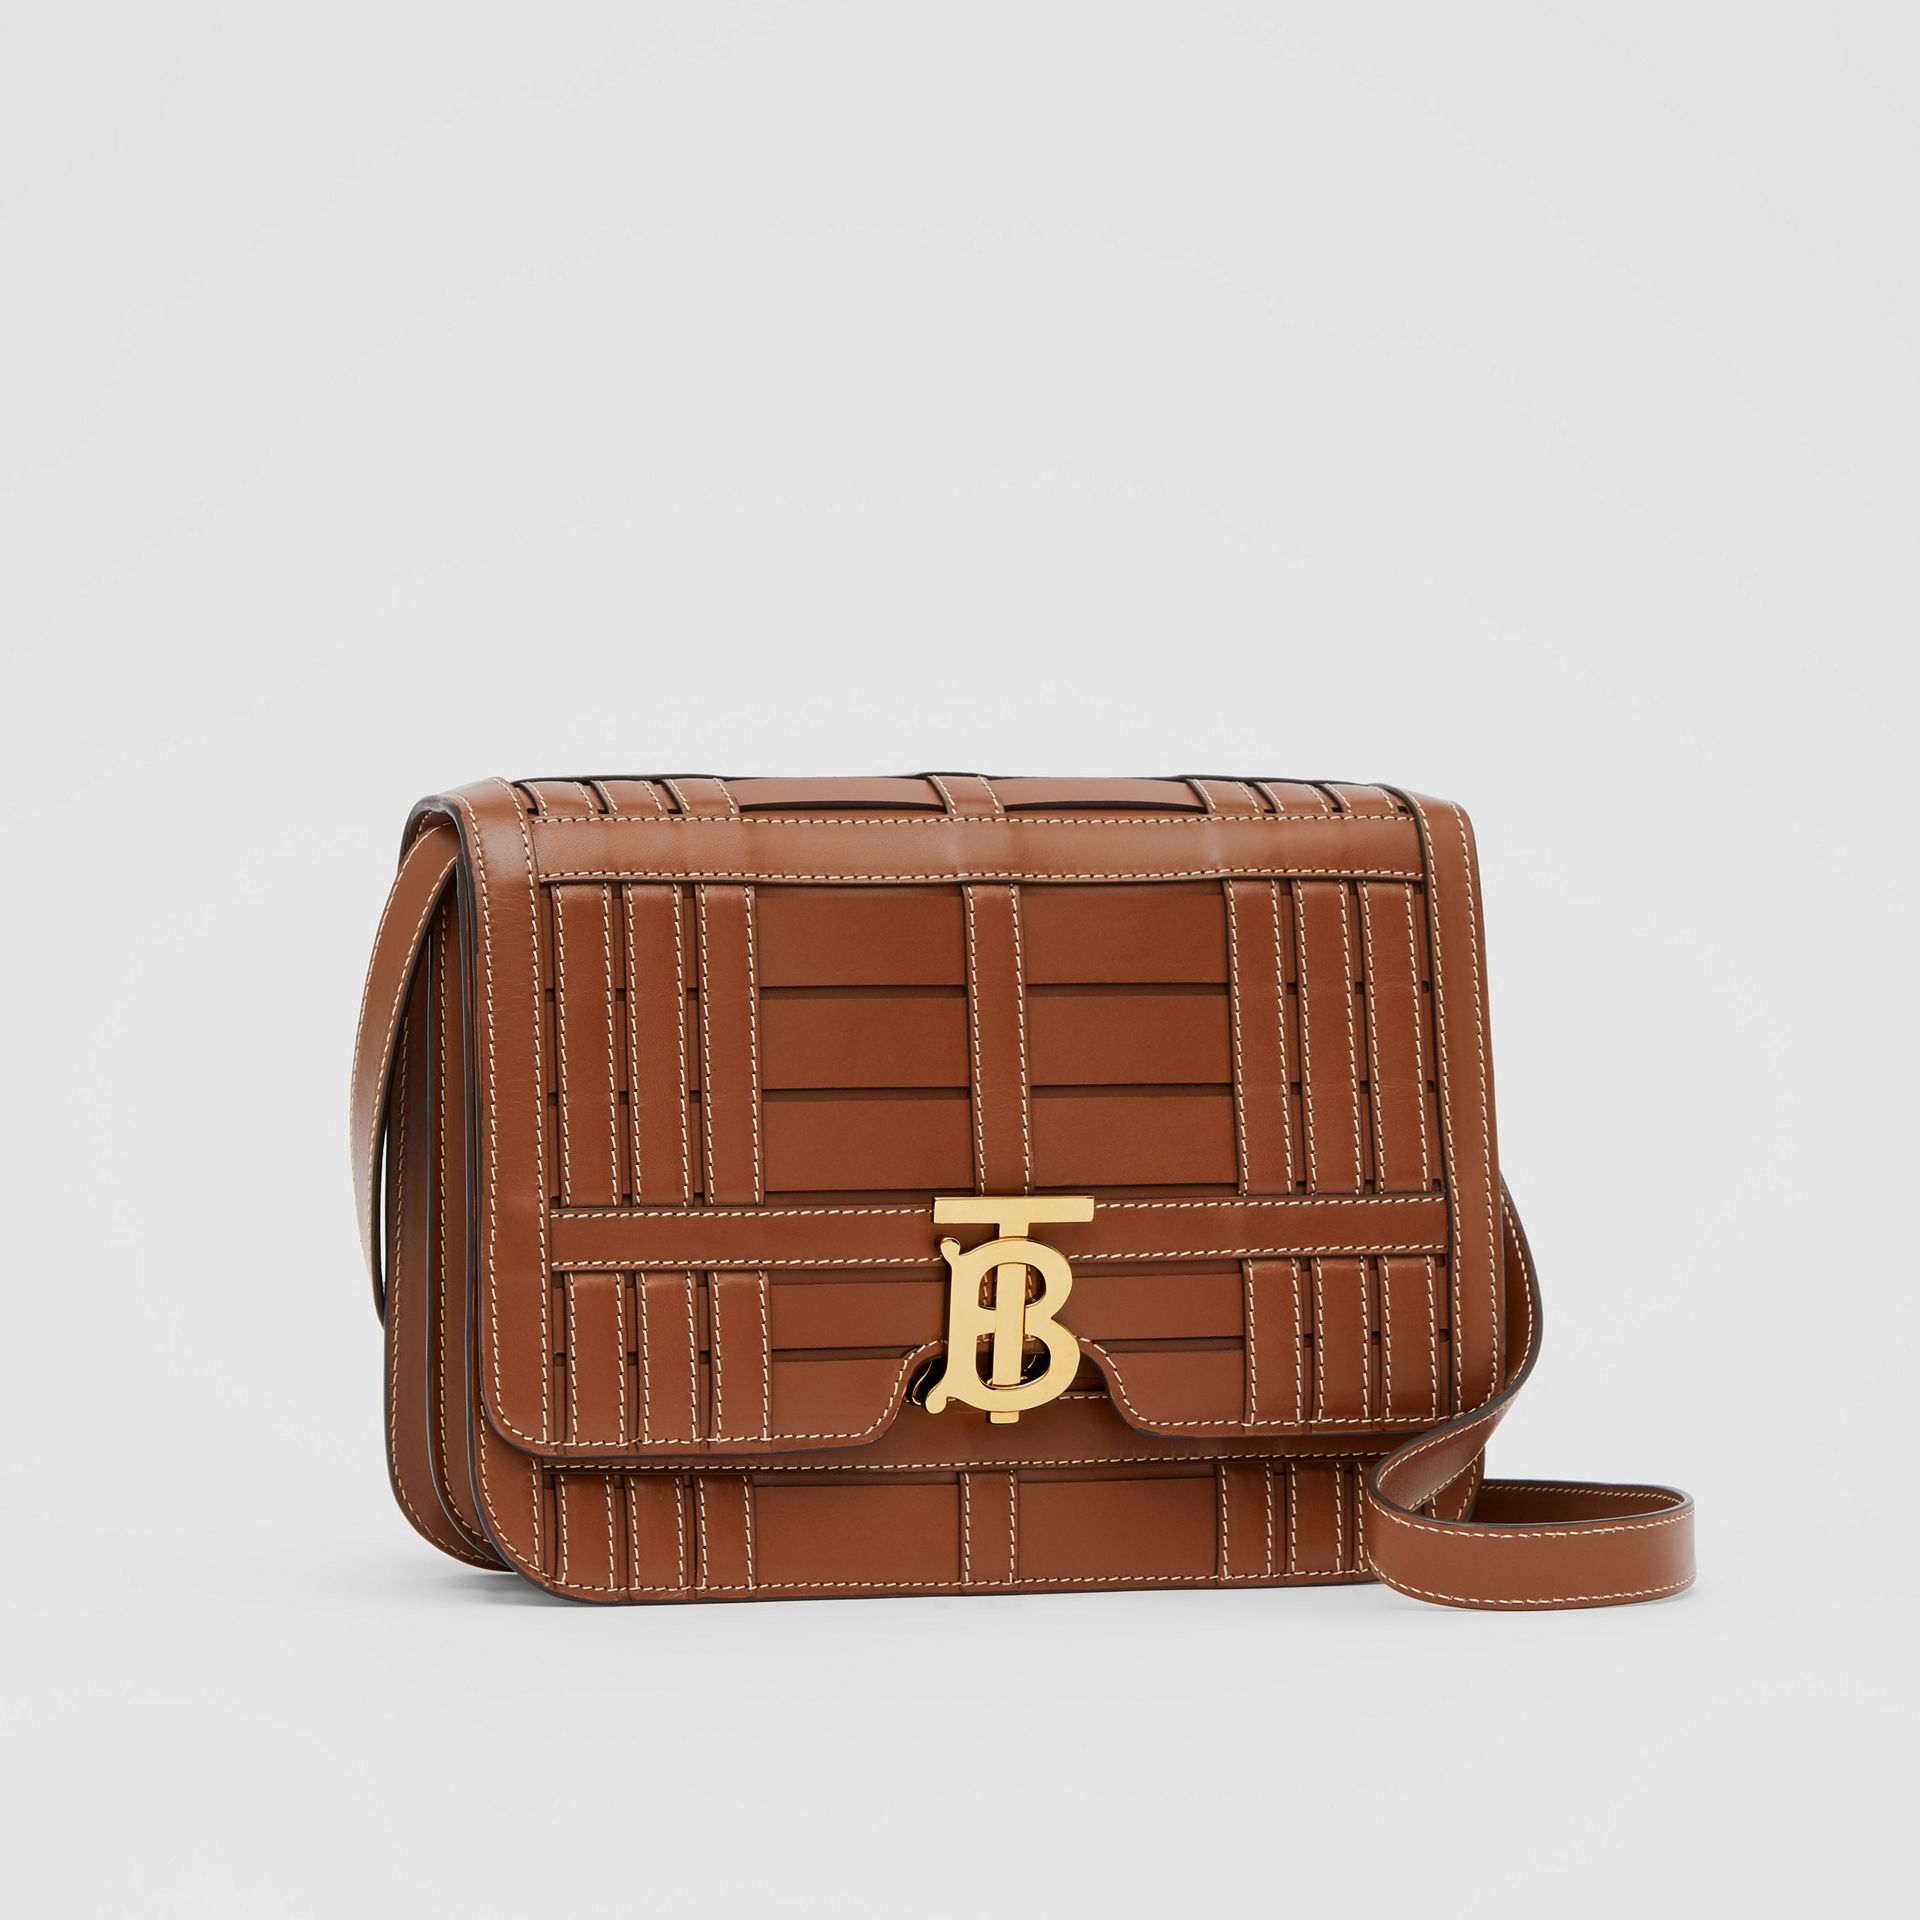 Medium Woven Leather TB Bag in Tan - Women | Burberry - gallery image 6